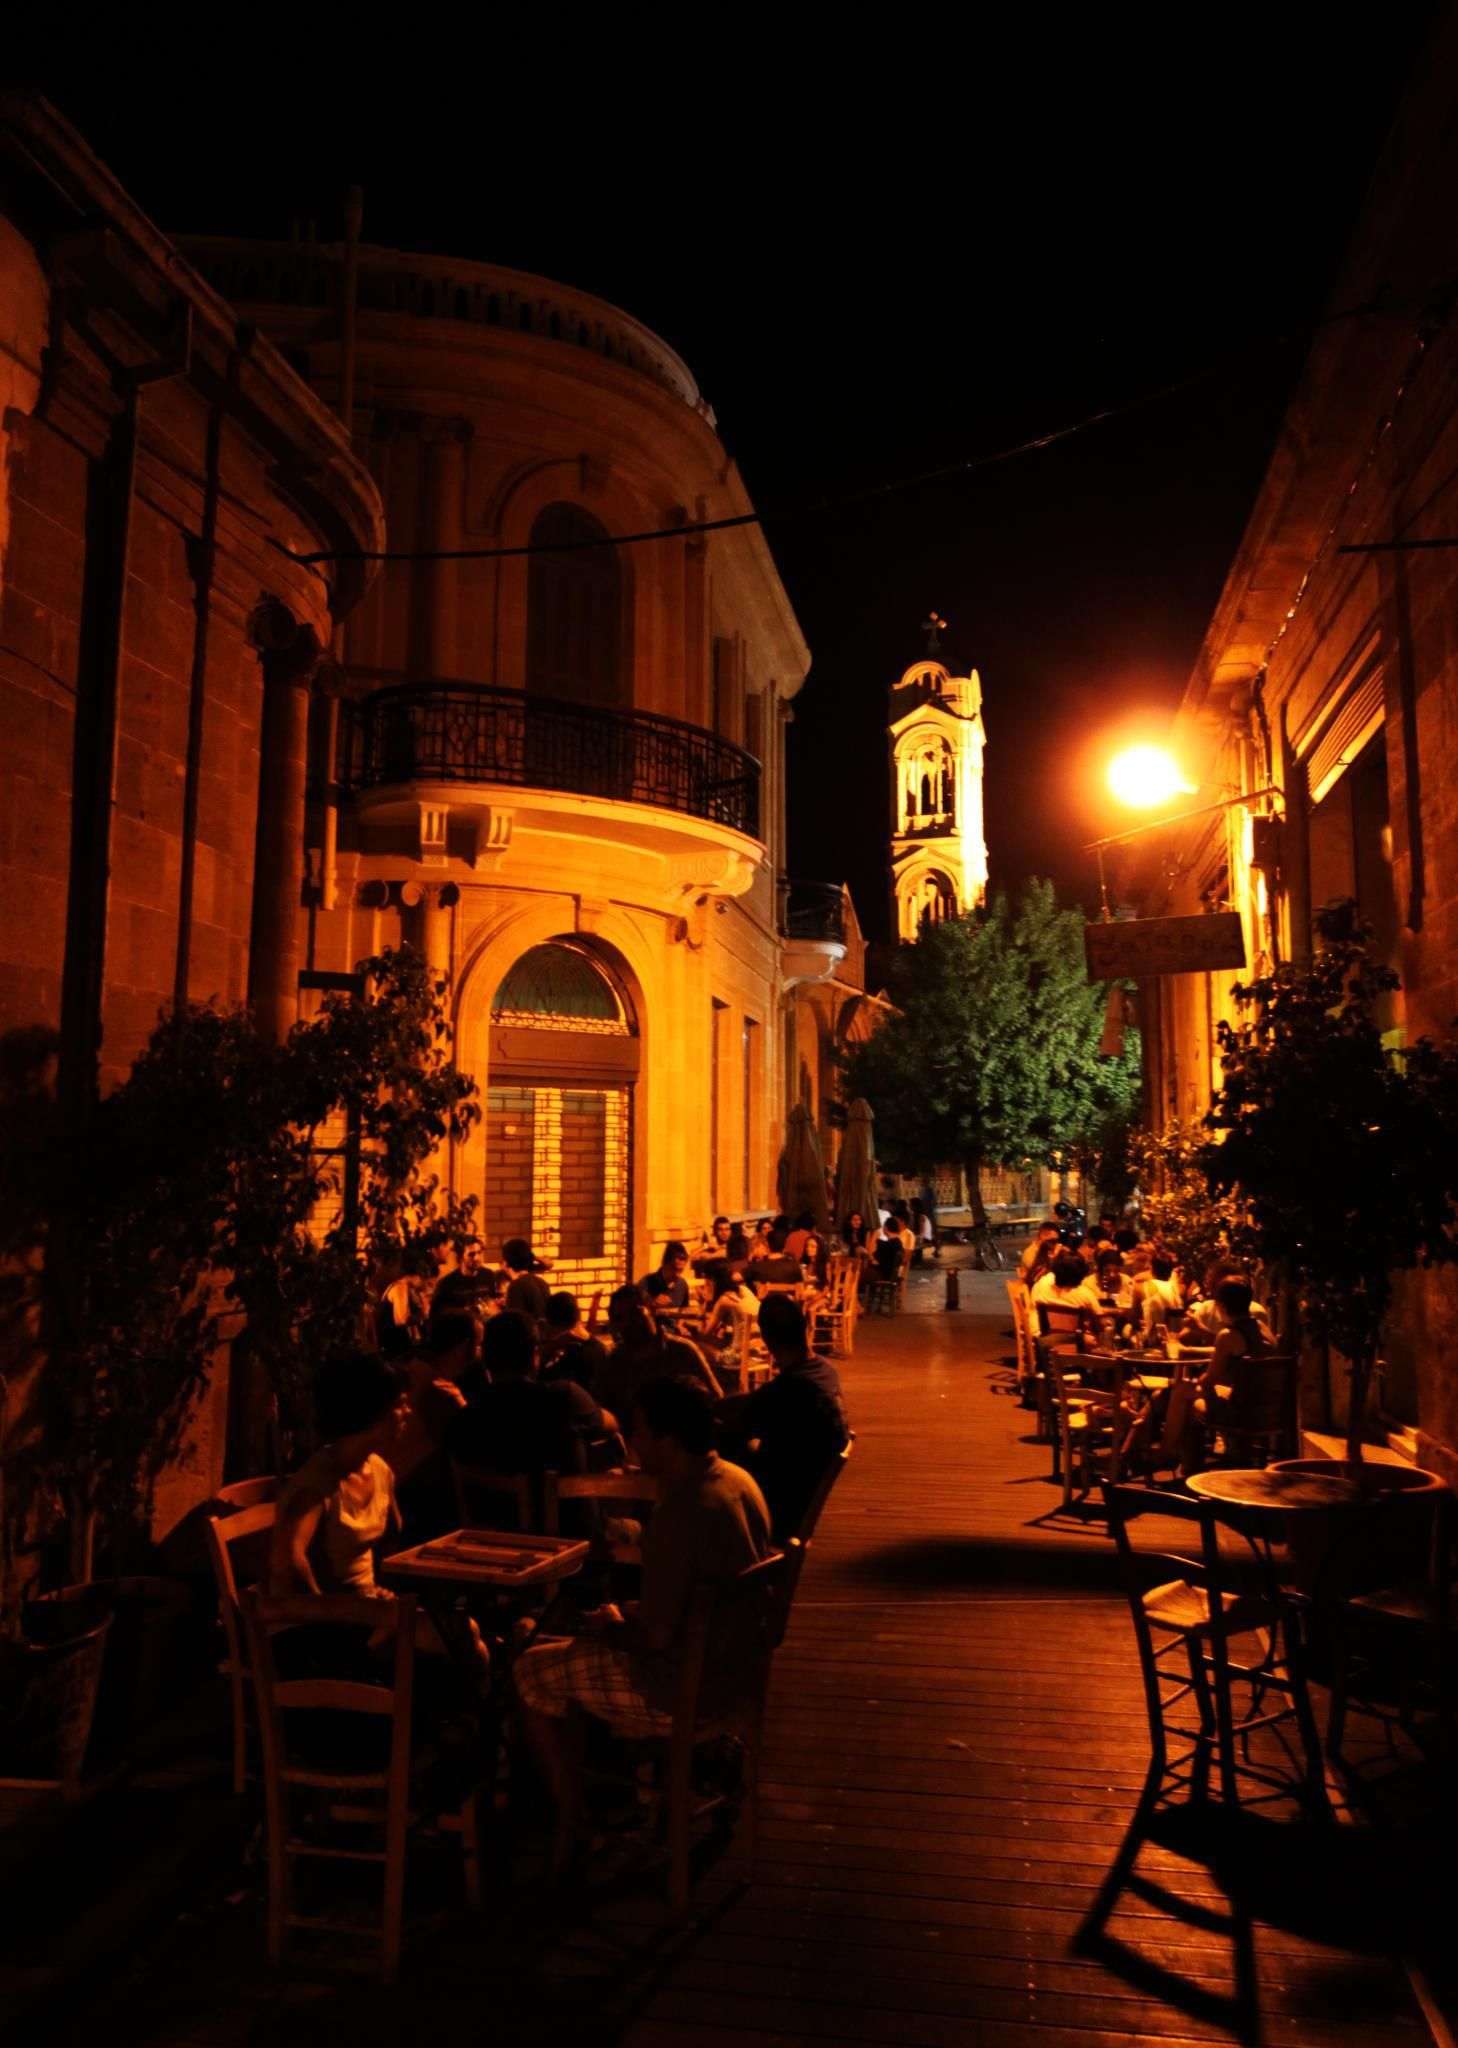 The old town of Nicosia, Cyprus